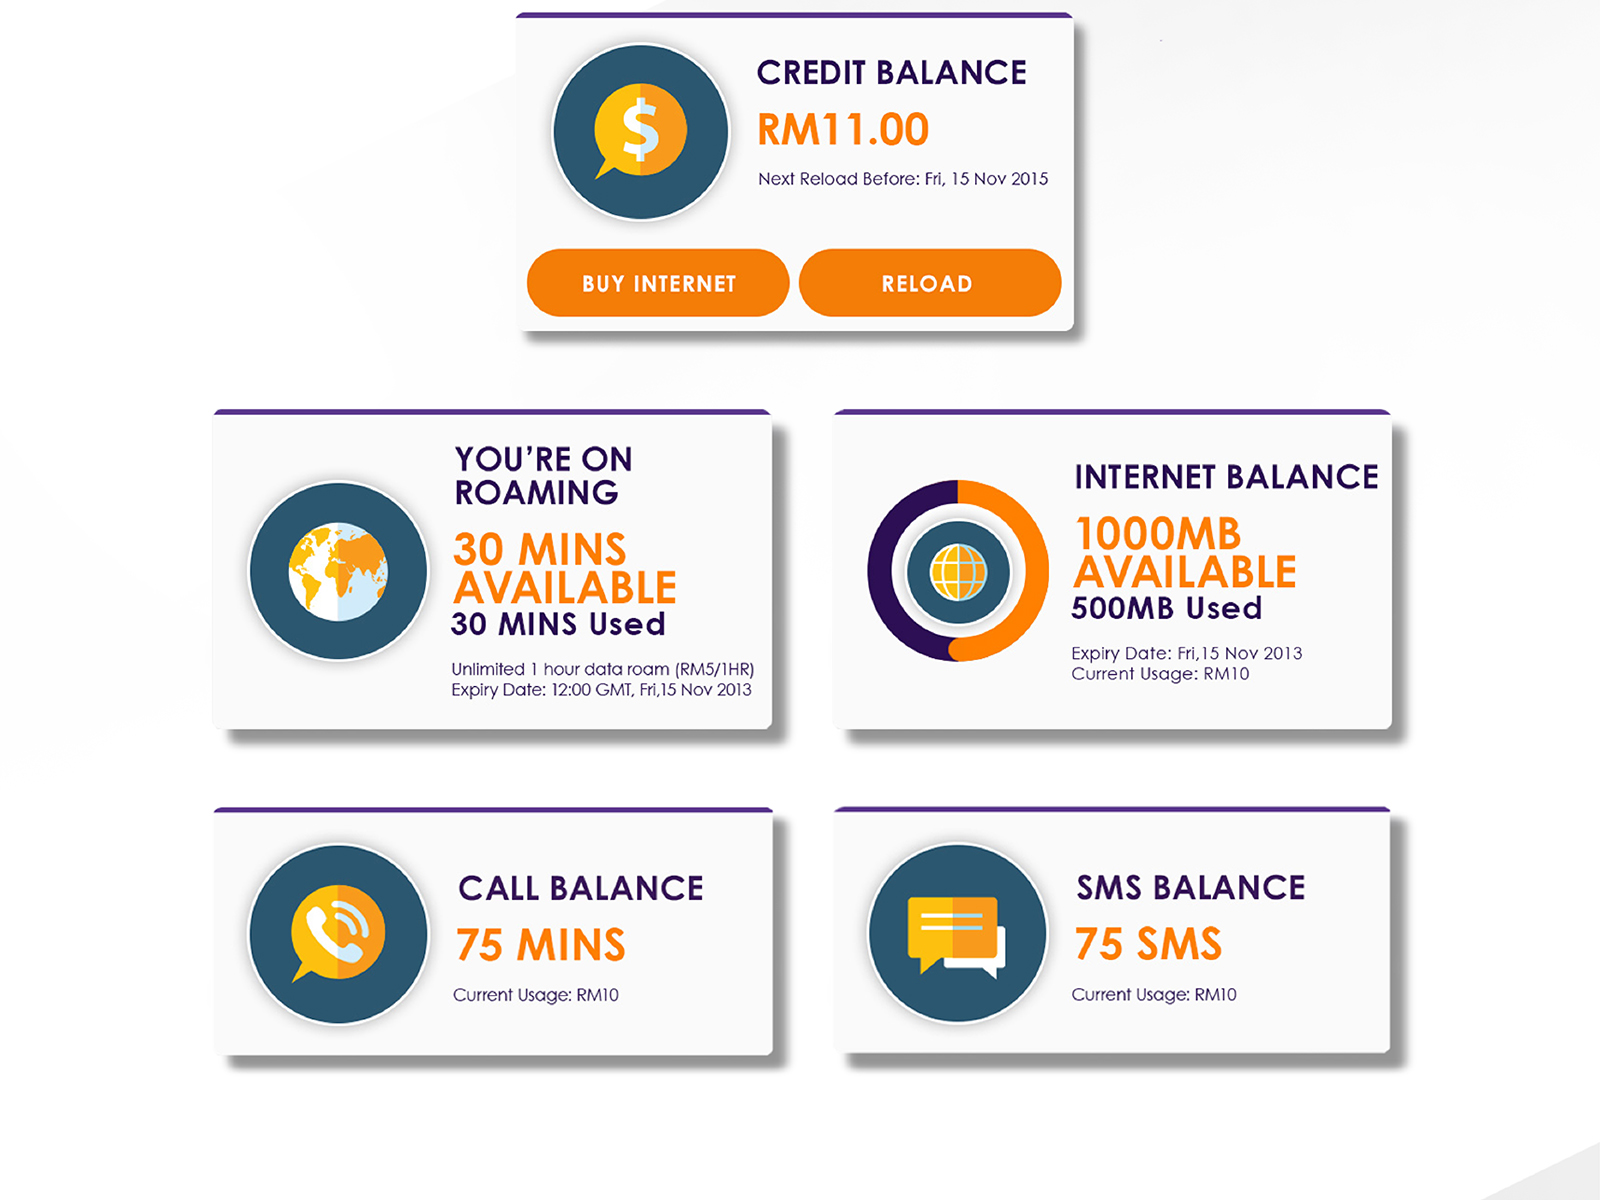 Xpax mobile app data tracking section design of credit balance, roaming, internet usage, call and sms balance